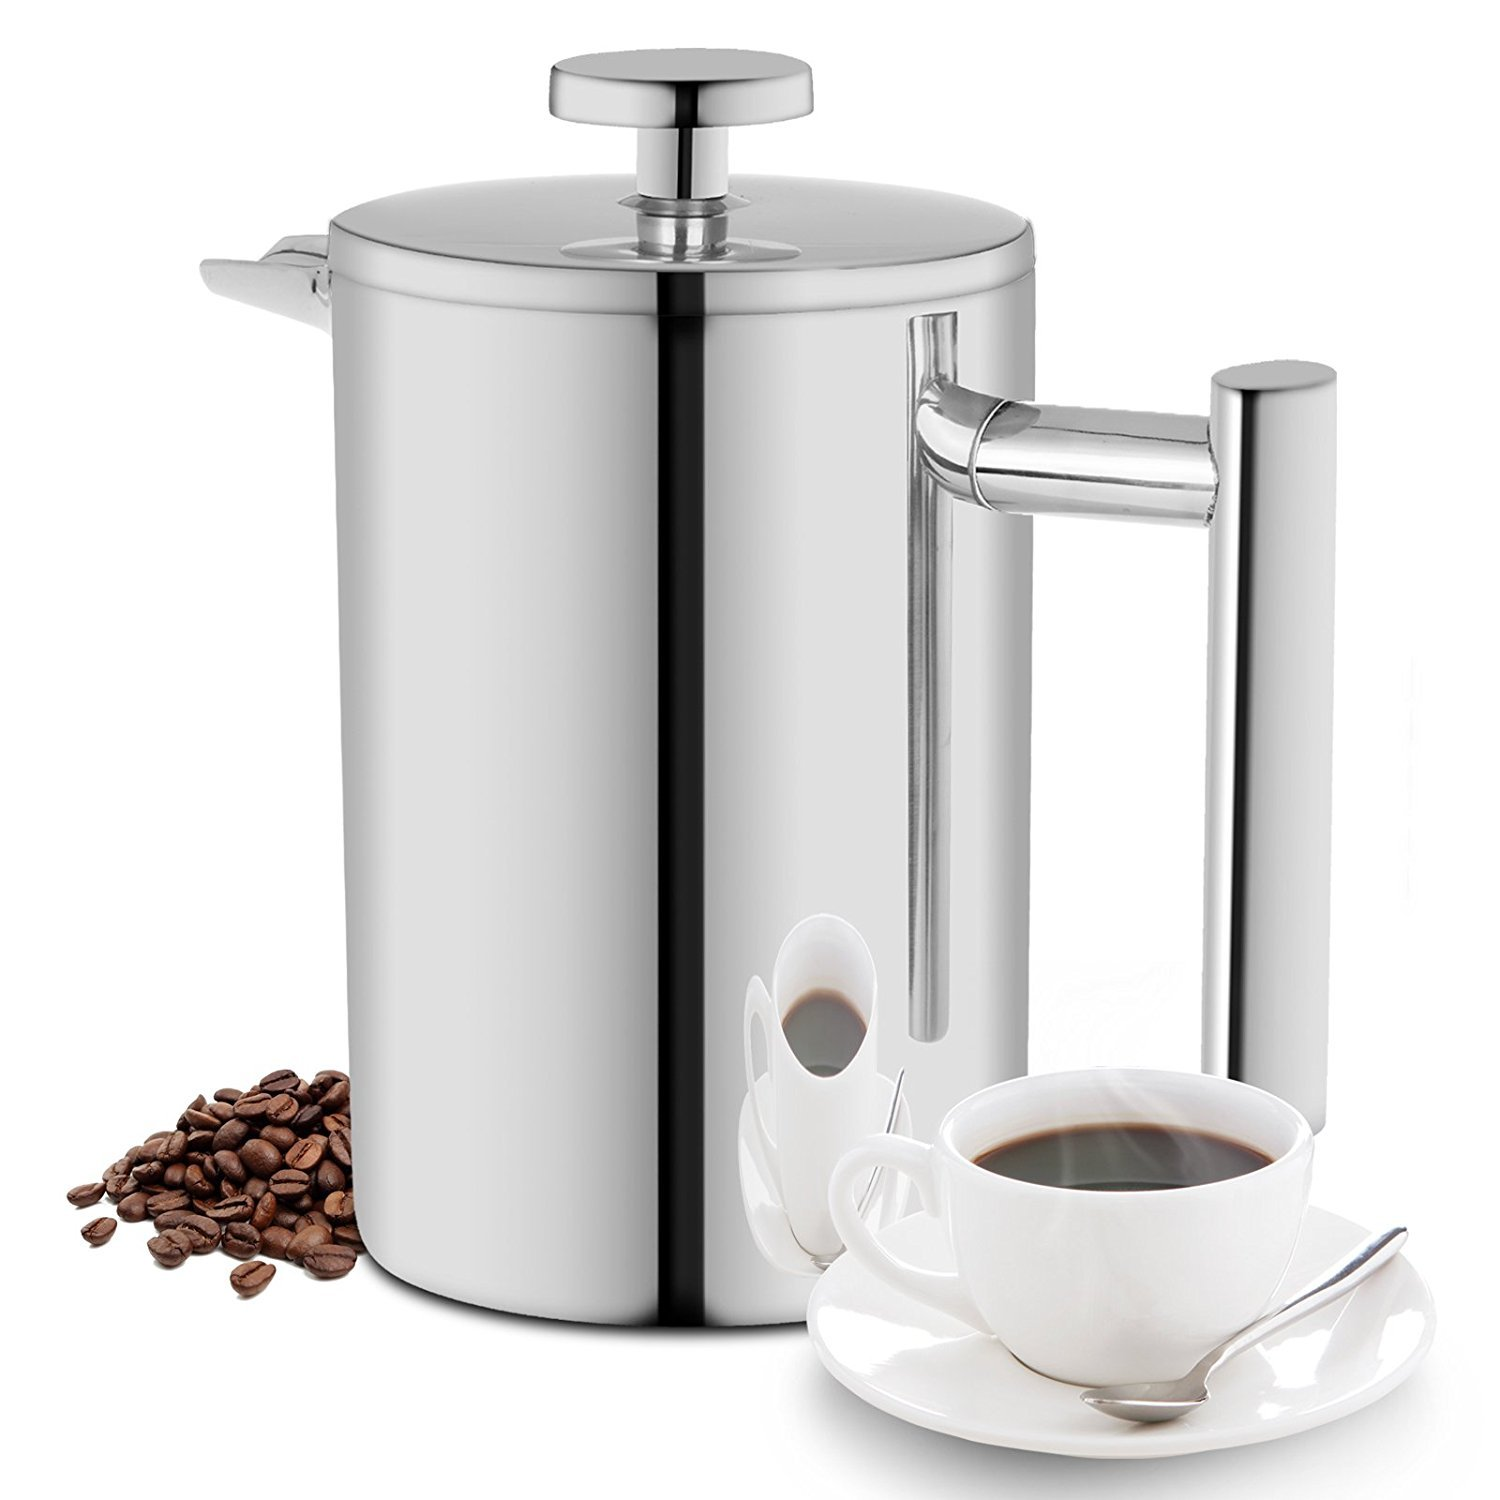 ALLWIN HOUSEWARE 350ML French Press, Double Wall Insulated 18/10 Stainless Steel Coffee Maker, 12oz